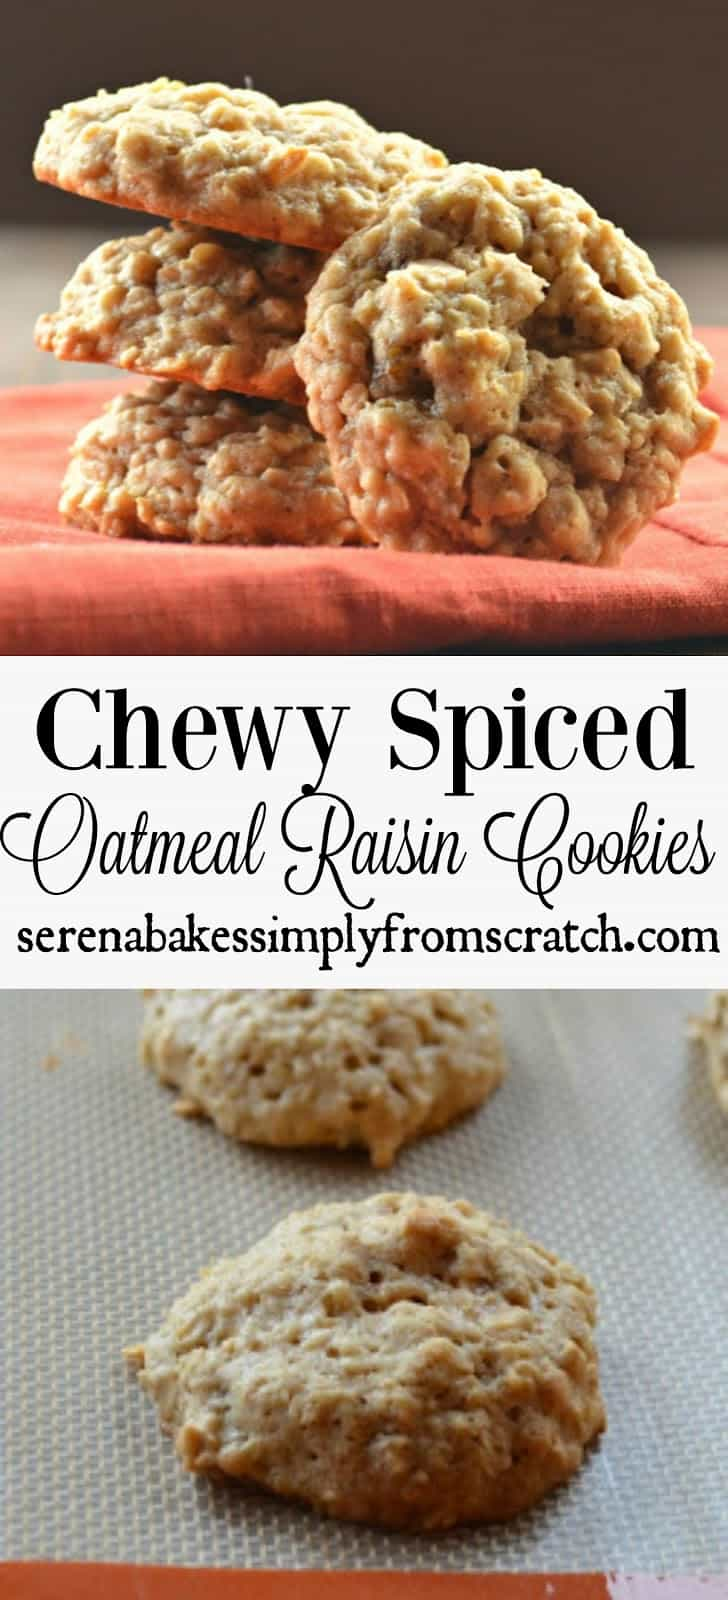 Chewy Spiced Oatmeal Raisin Cookies recipe from Serena Bakes Simply From Scratch. A must make if you like soft chewy oatmeal cookies.